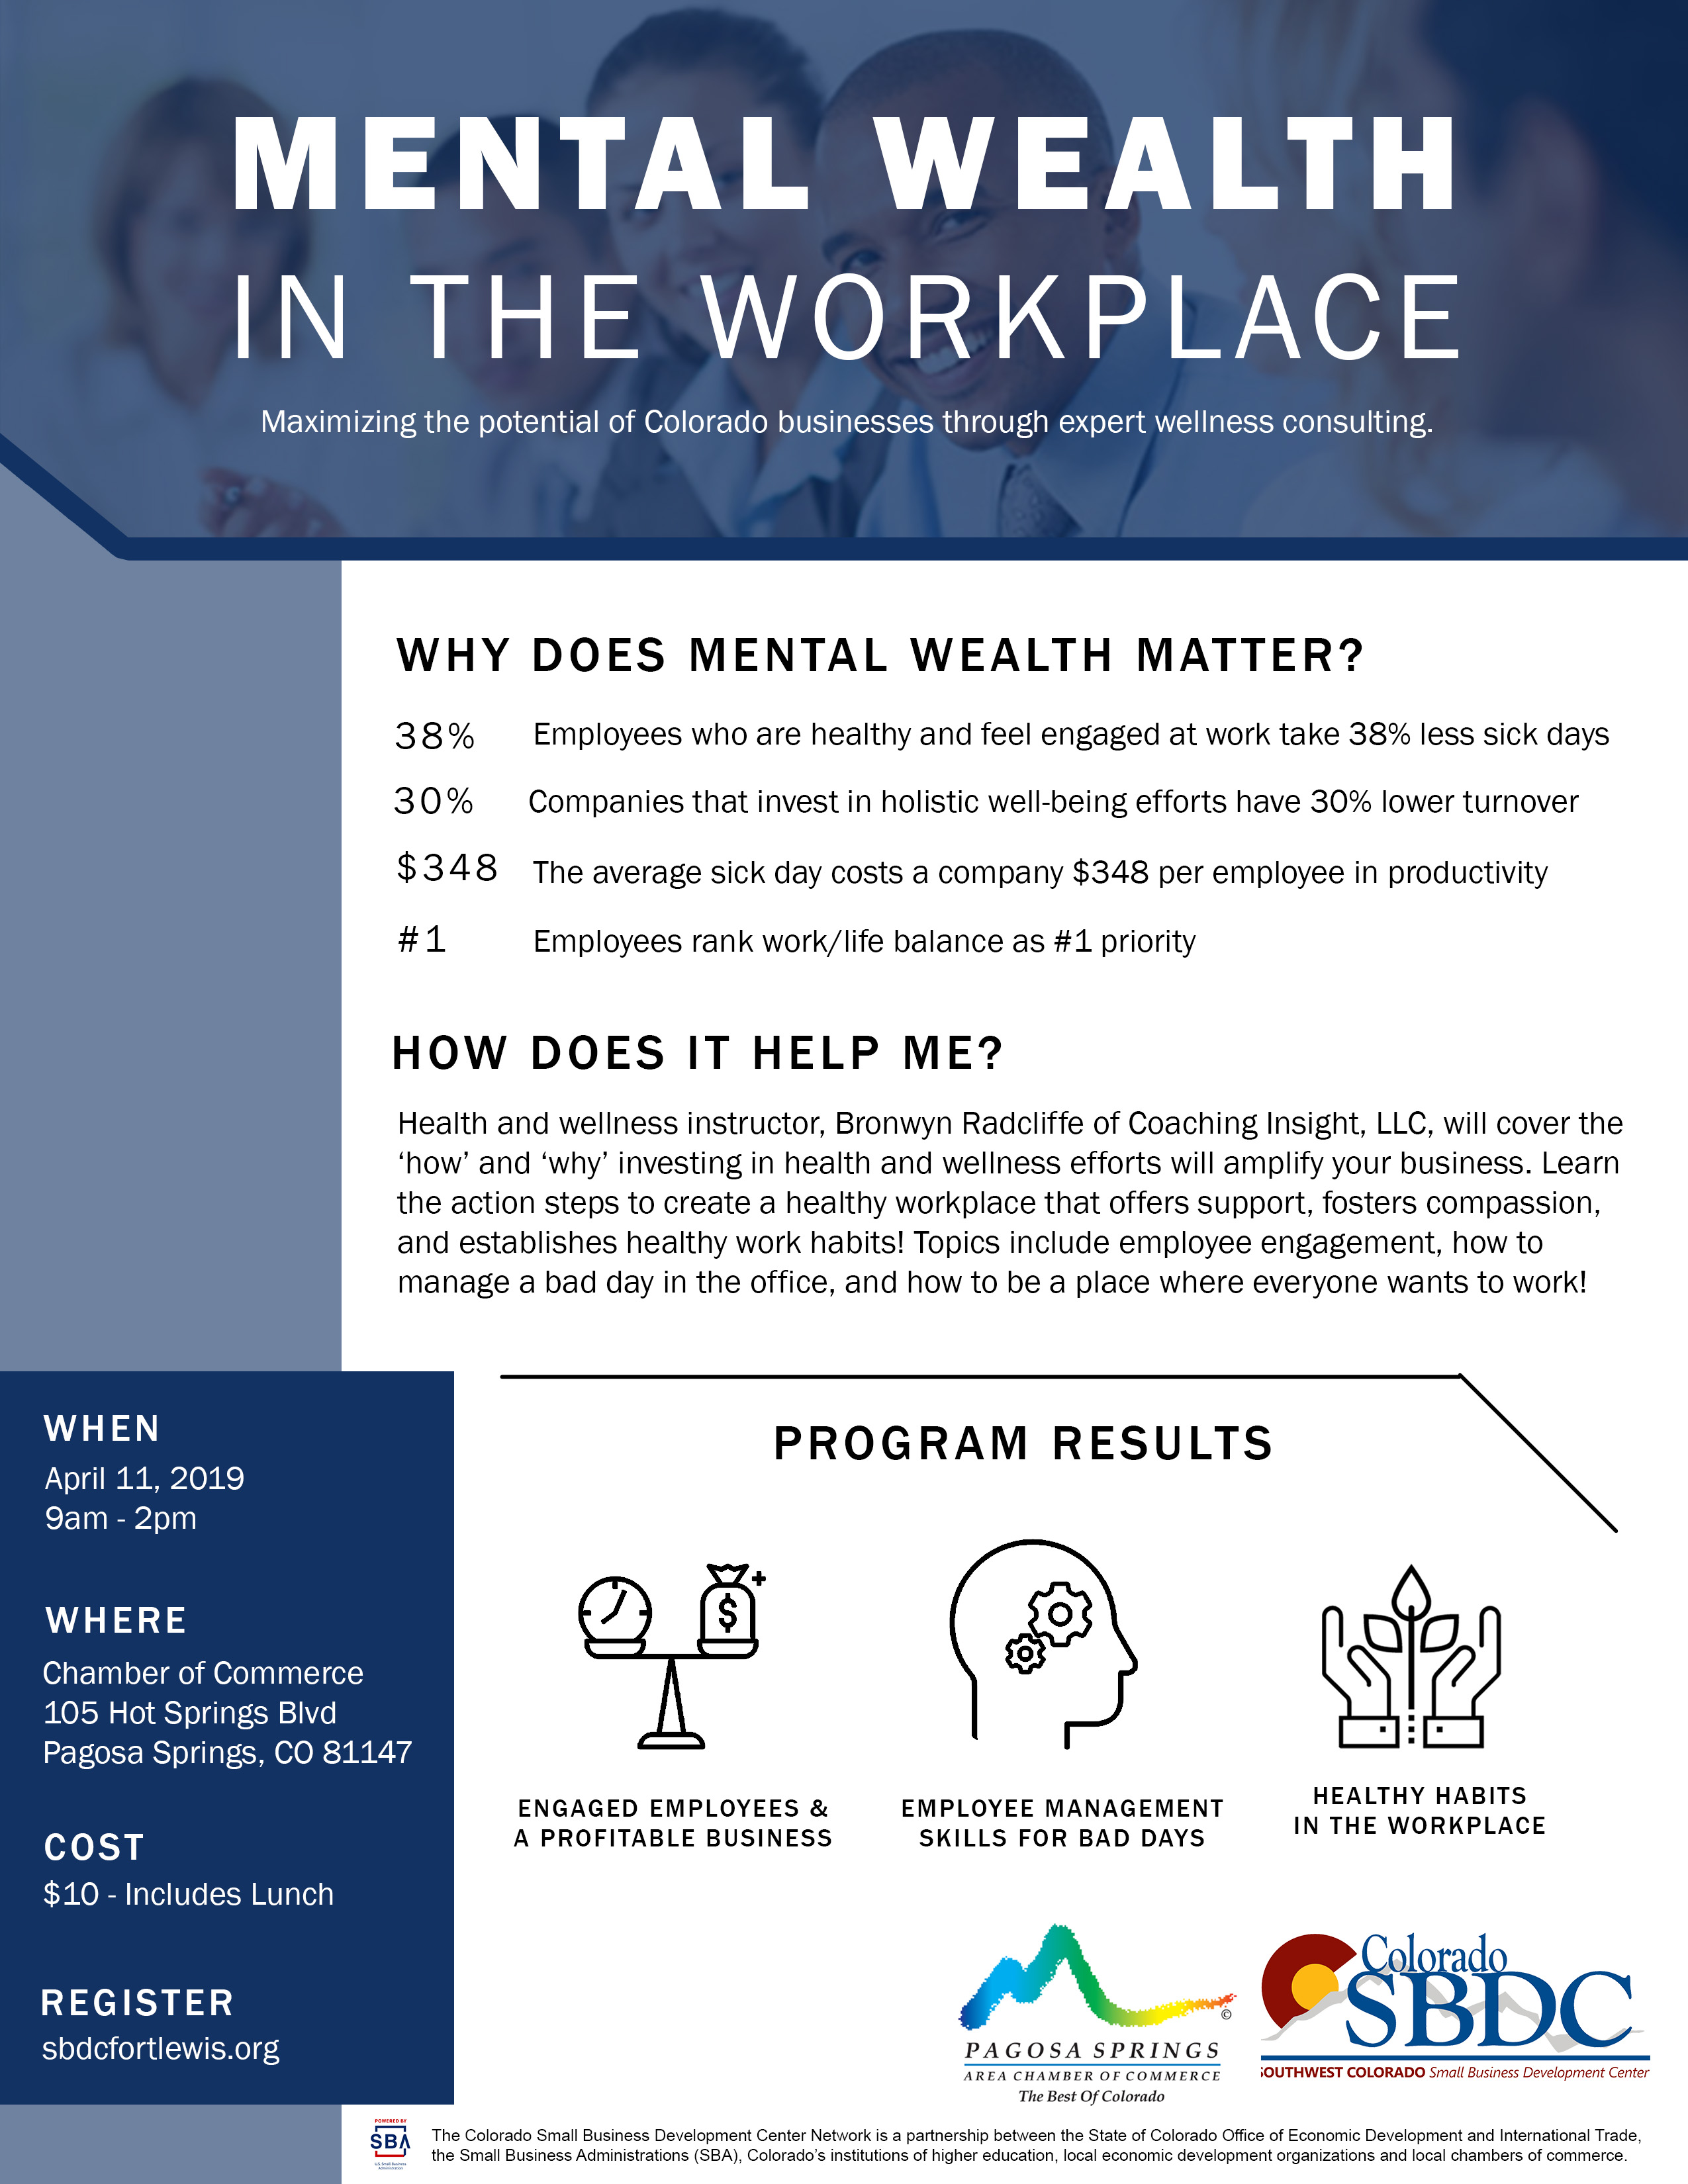 Mental Wealth in the Workplace